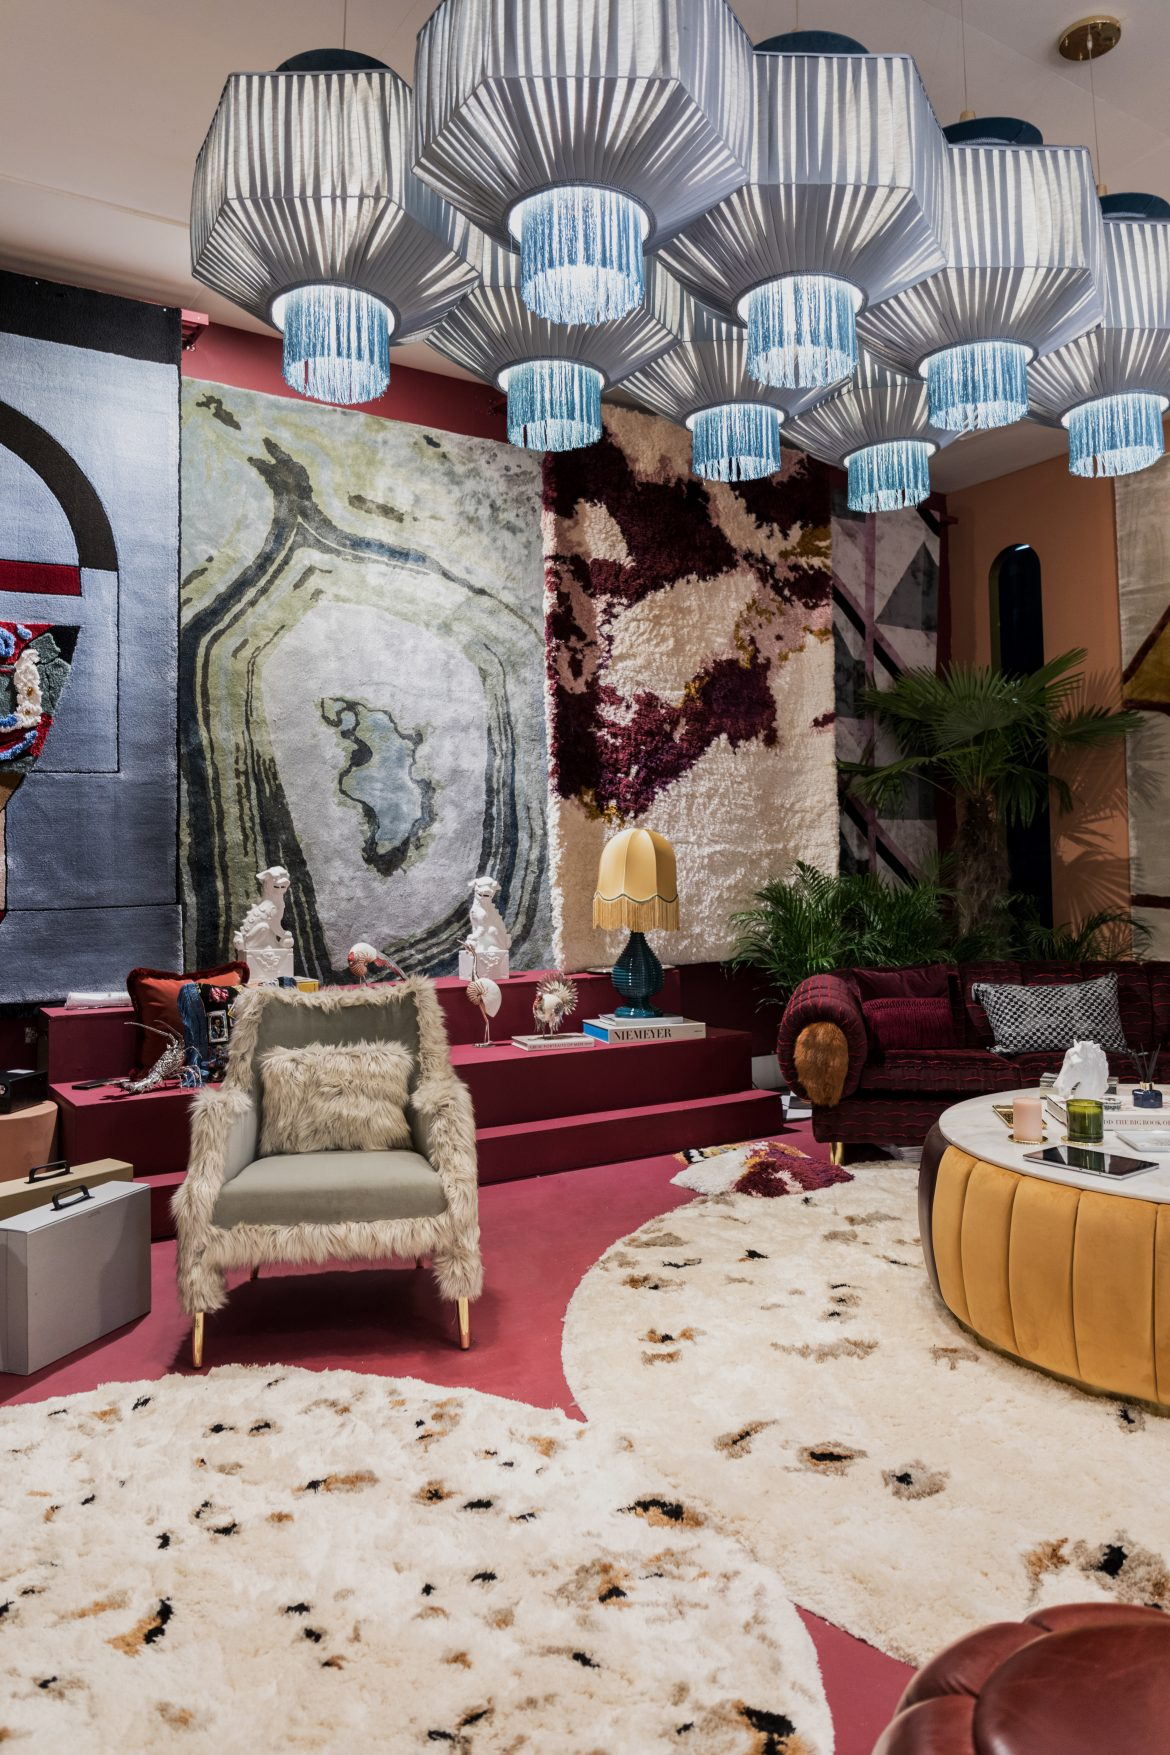 isaloni 2019 Isaloni 2019: Furniture Brands You Simply Cannot Miss  Isaloni 2019 Furniture Brands You Simply Cannot Miss 7